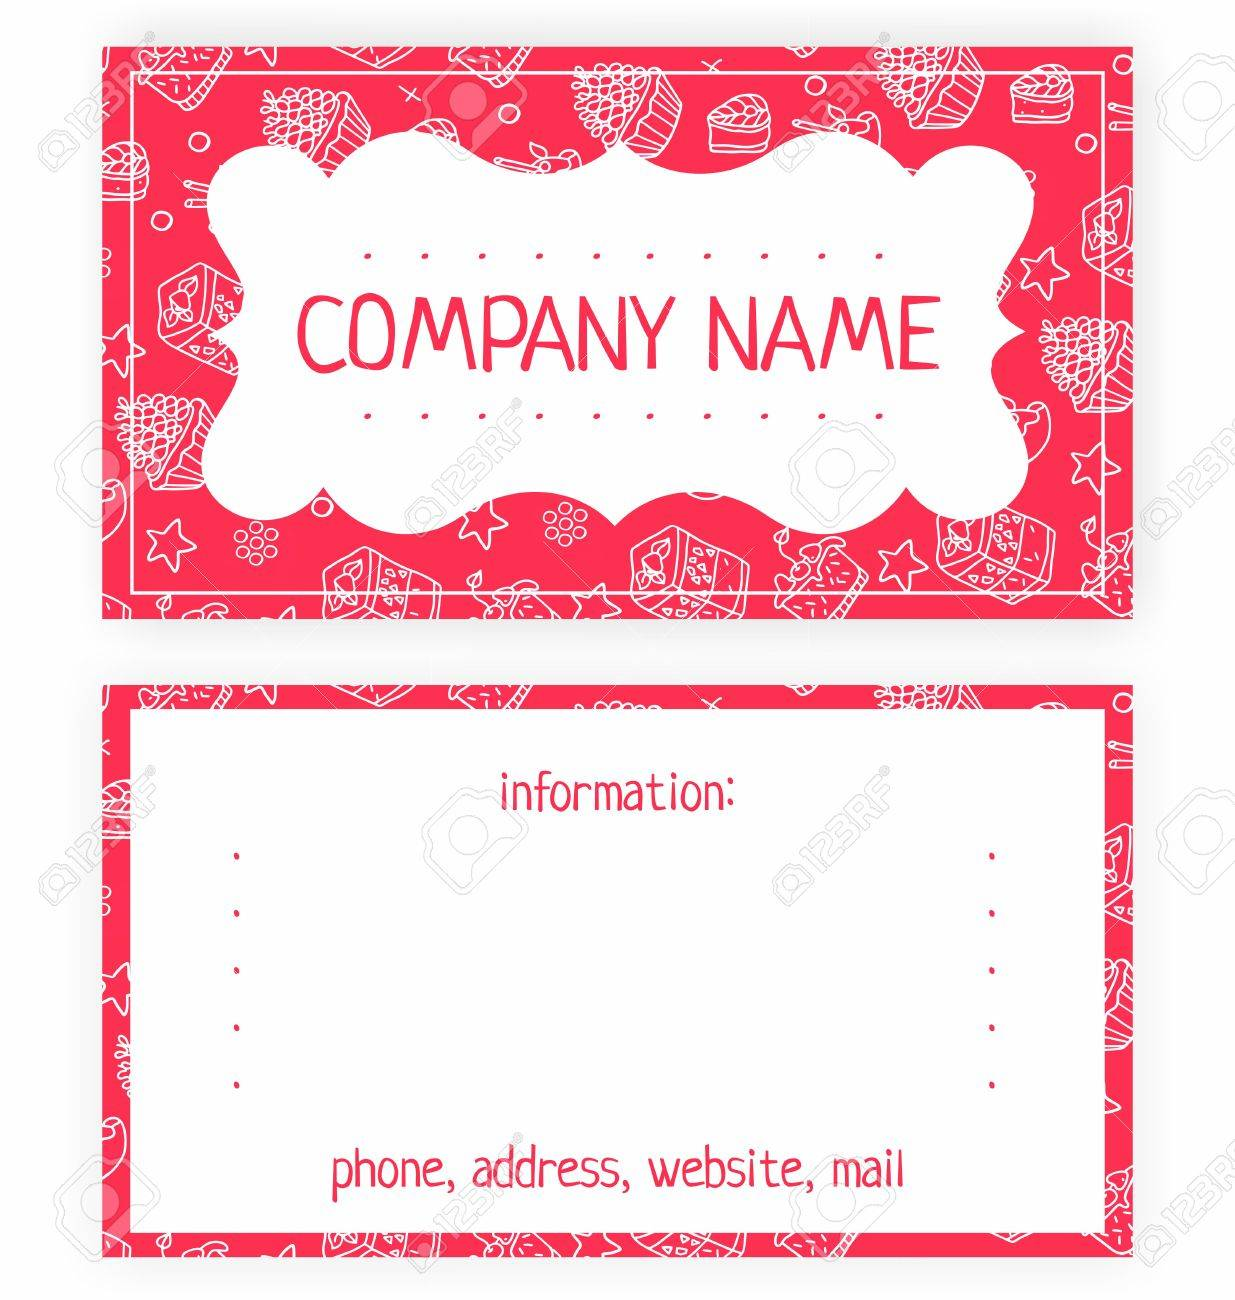 Business Cards For Cake Gallery - Card Design And Card Template